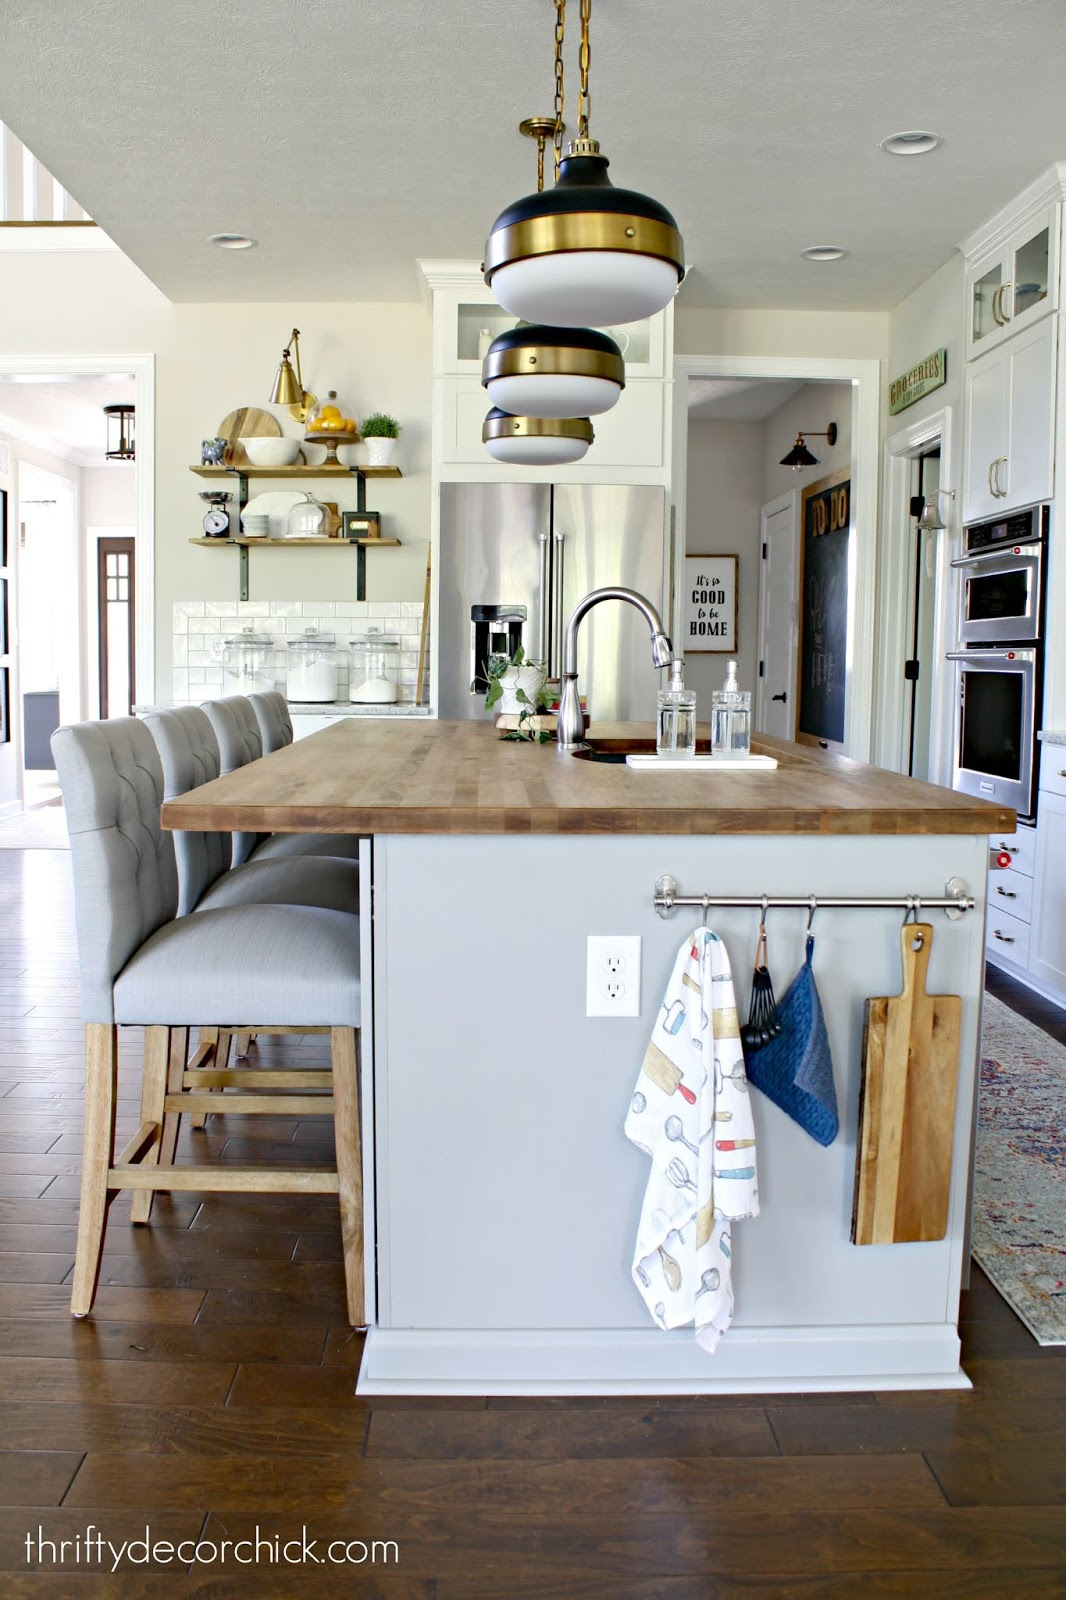 How to add character to basic kitchen island